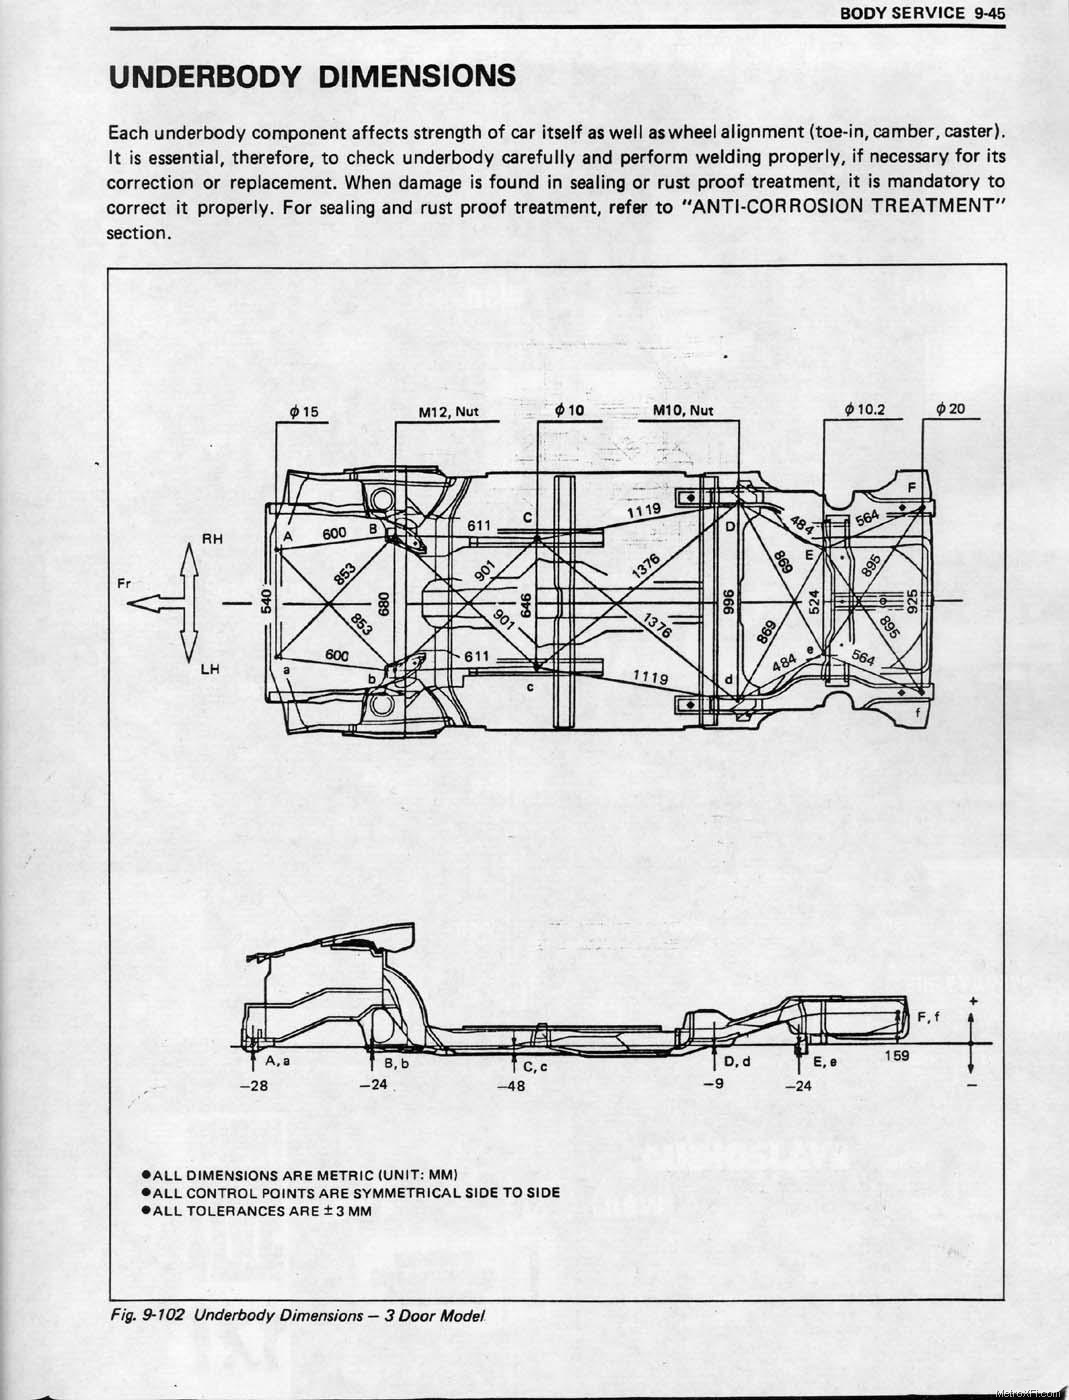 Geo Prizm Engine Diagram Freeze Plugs Not Lossing Wiring 1995 Library Rh 16 Skriptoase De 1990